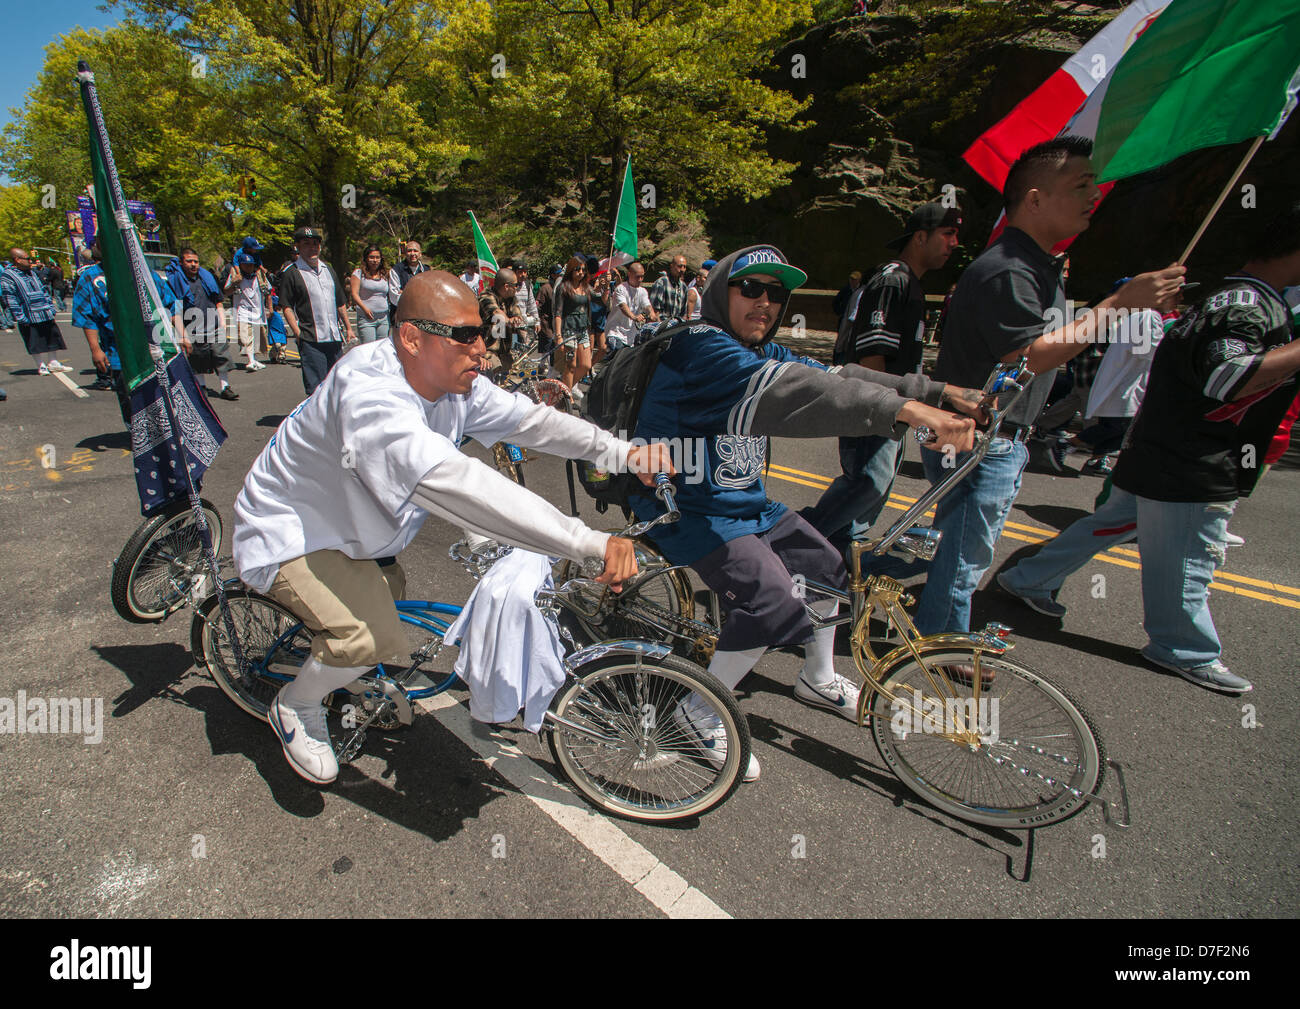 Bicycle club members in the Cinco de Mayo Parade in New York - Stock Image